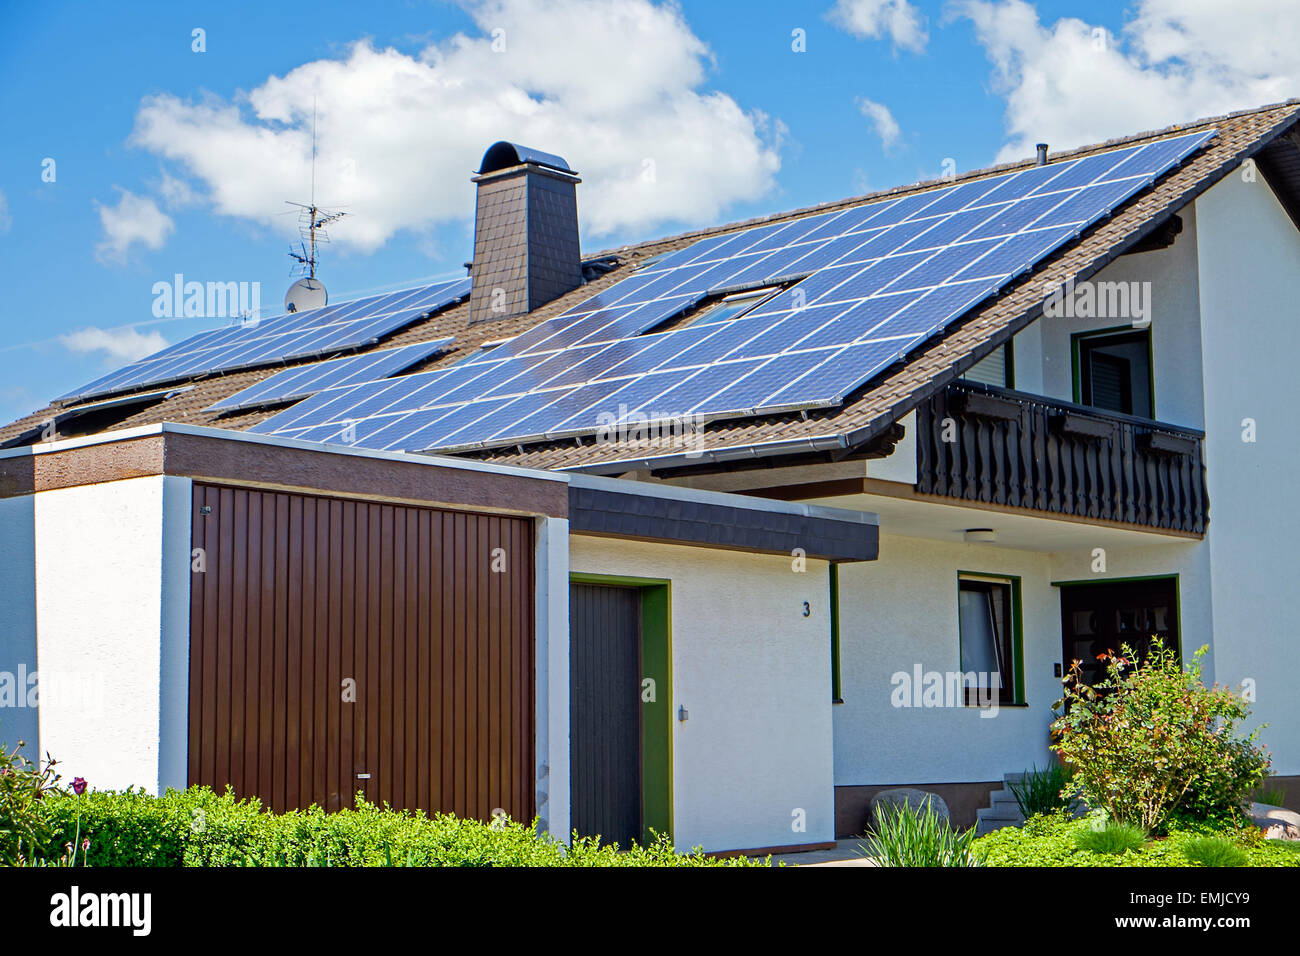 A house with solar panels on the roof - Stock Image